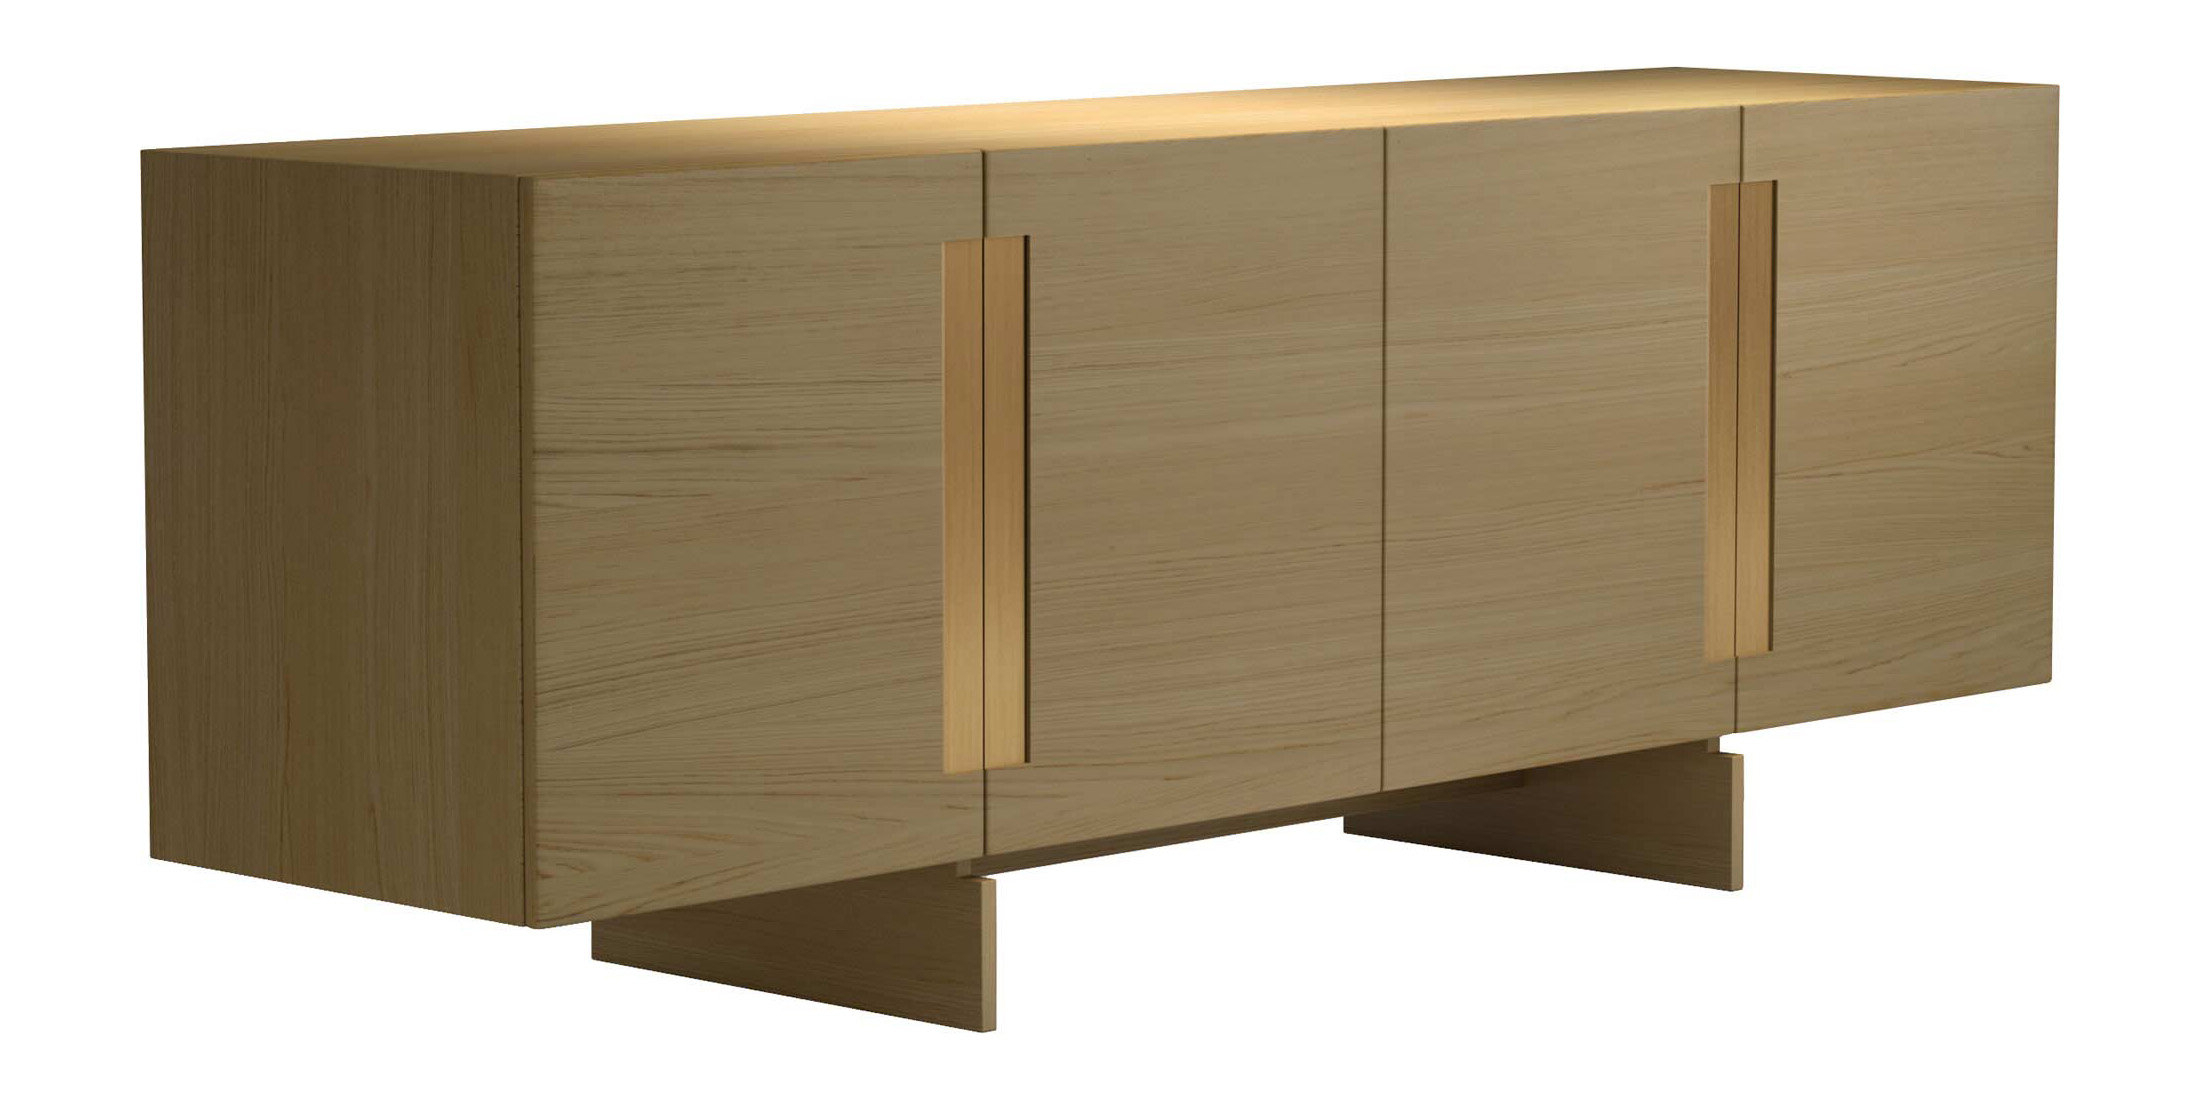 2019 Brixton Sideboard Inside Wendell Sideboards (View 2 of 20)